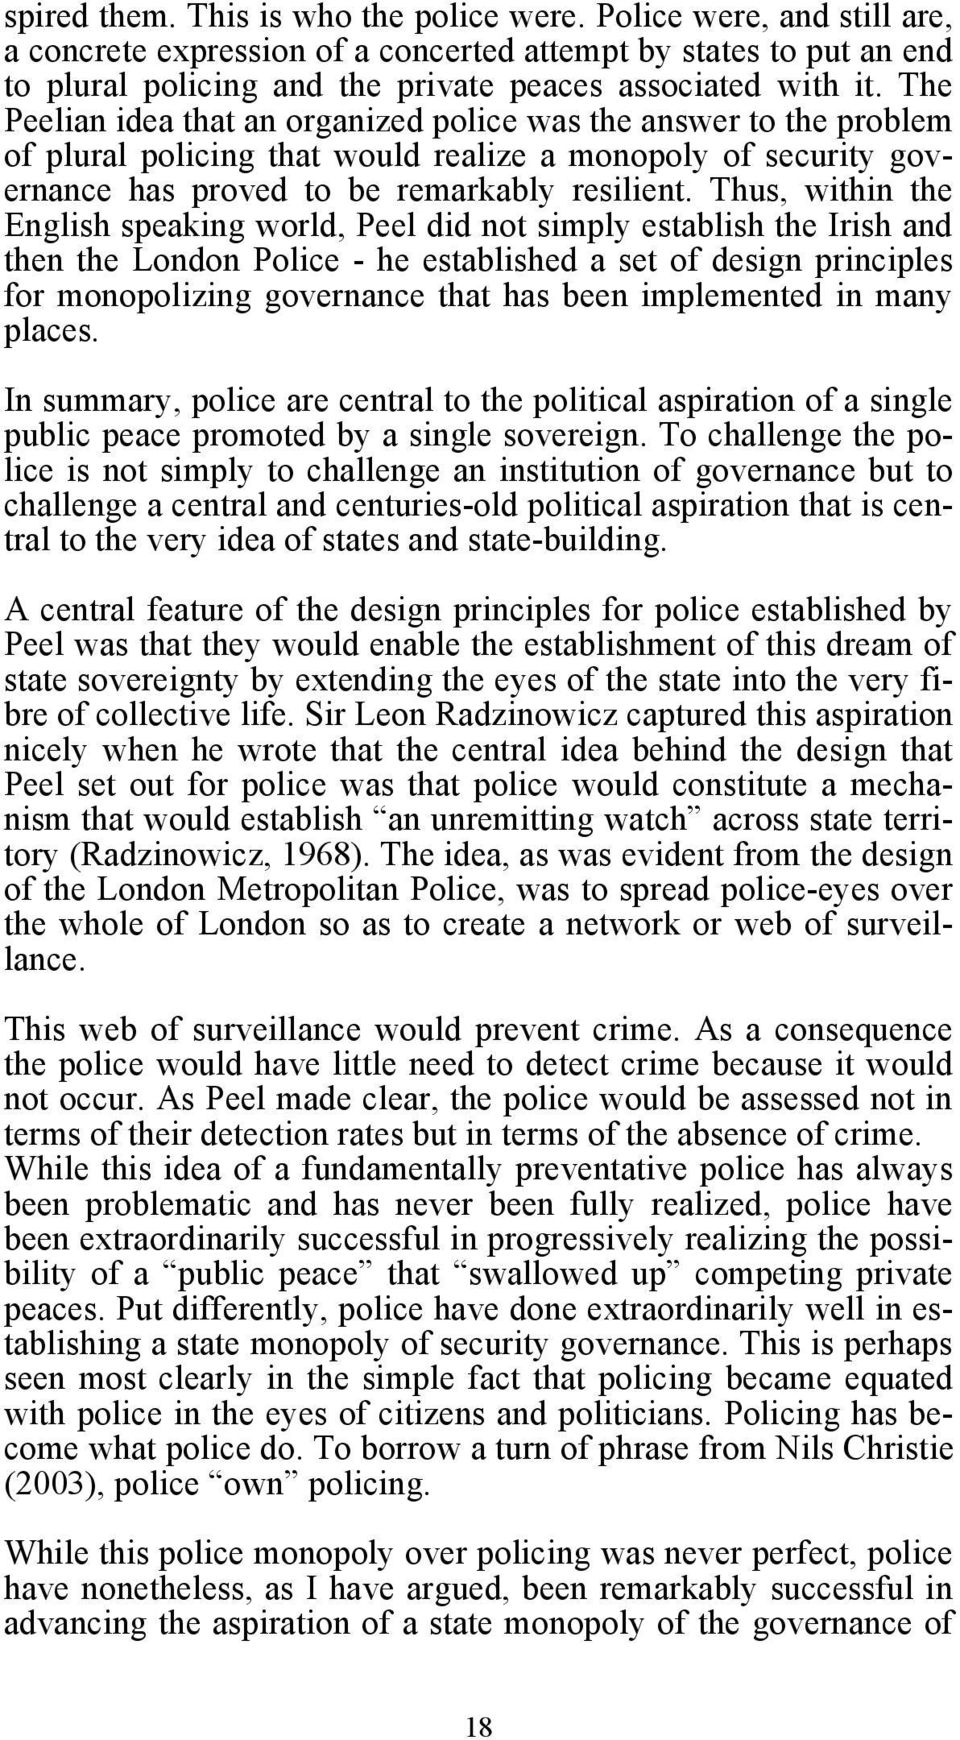 Thus, within the English speaking world, Peel did not simply establish the Irish and then the London Police - he established a set of design principles for monopolizing governance that has been